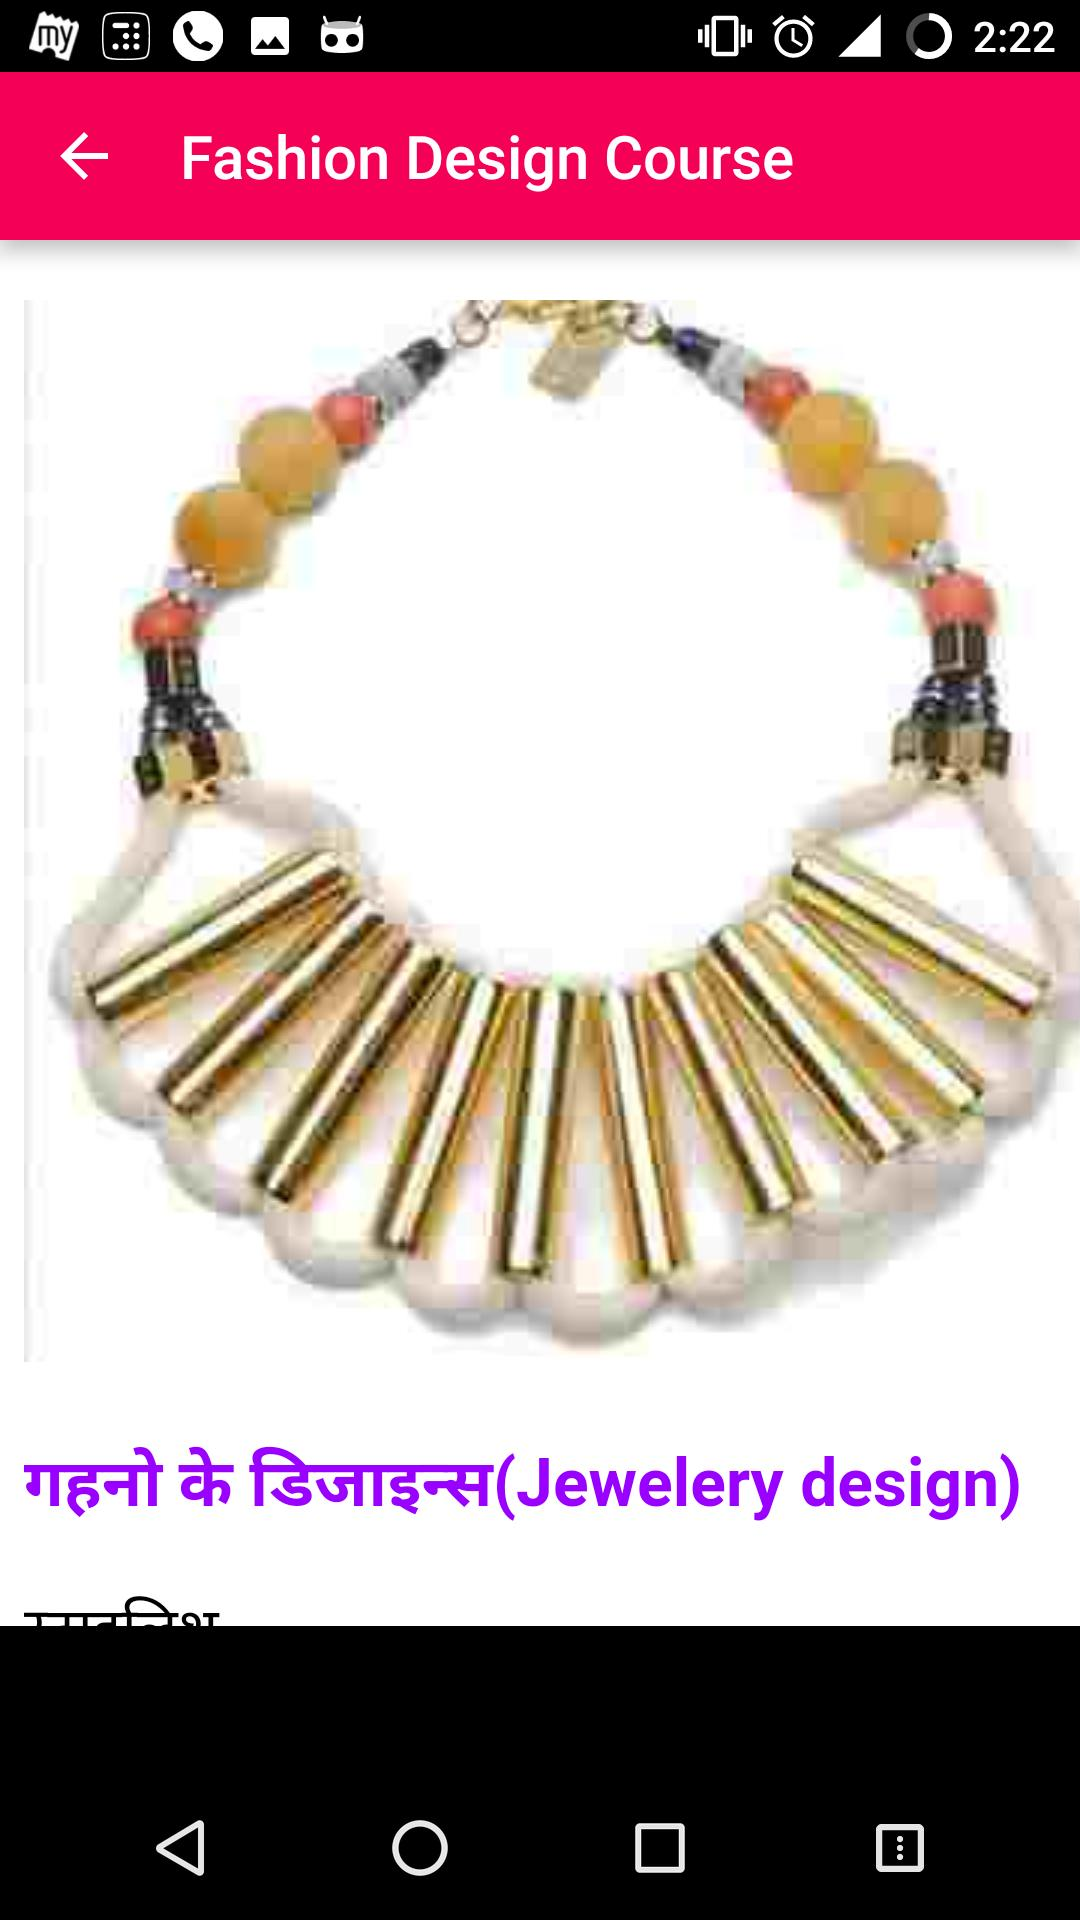 Fashion Design Course Hindi for Android - APK Download